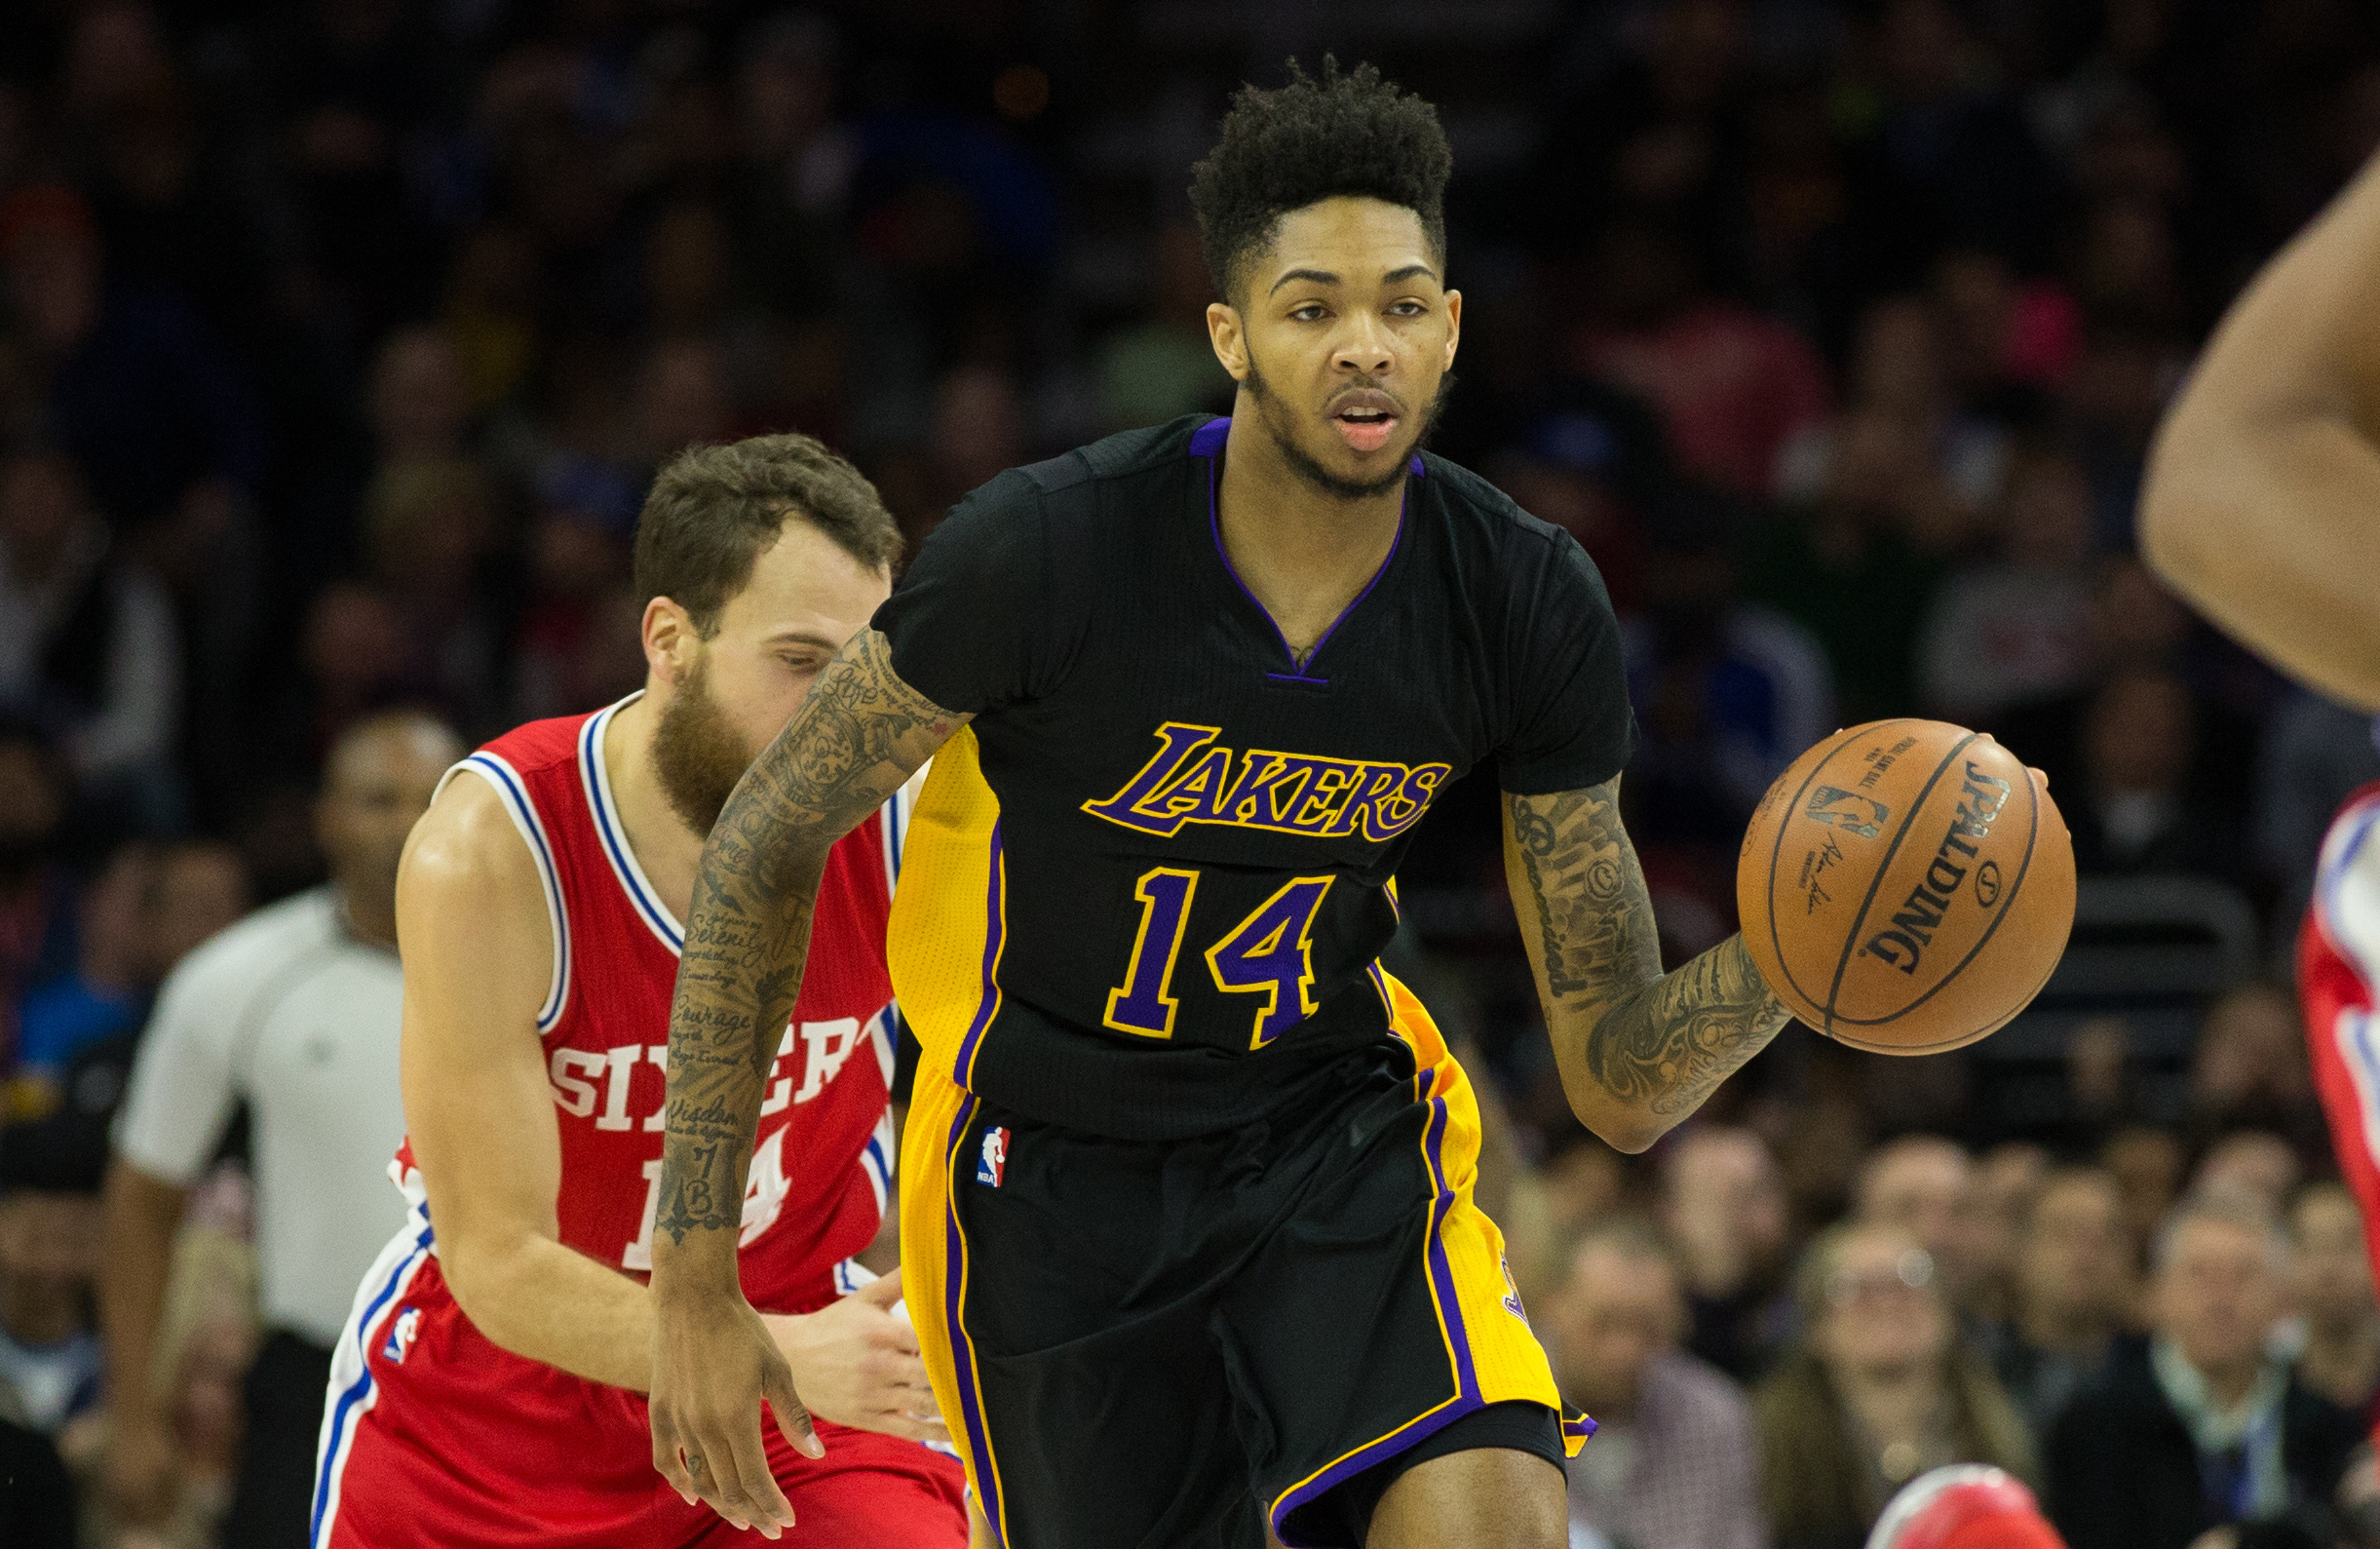 Dec 16, 2016; Philadelphia, PA, USA; Los Angeles Lakers forward Brandon Ingram (14) dribbles past Philadelphia 76ers guard Sergio Rodriguez (14) during the second quarter at Wells Fargo Center. Mandatory Credit: Bill Streicher-USA TODAY Sports